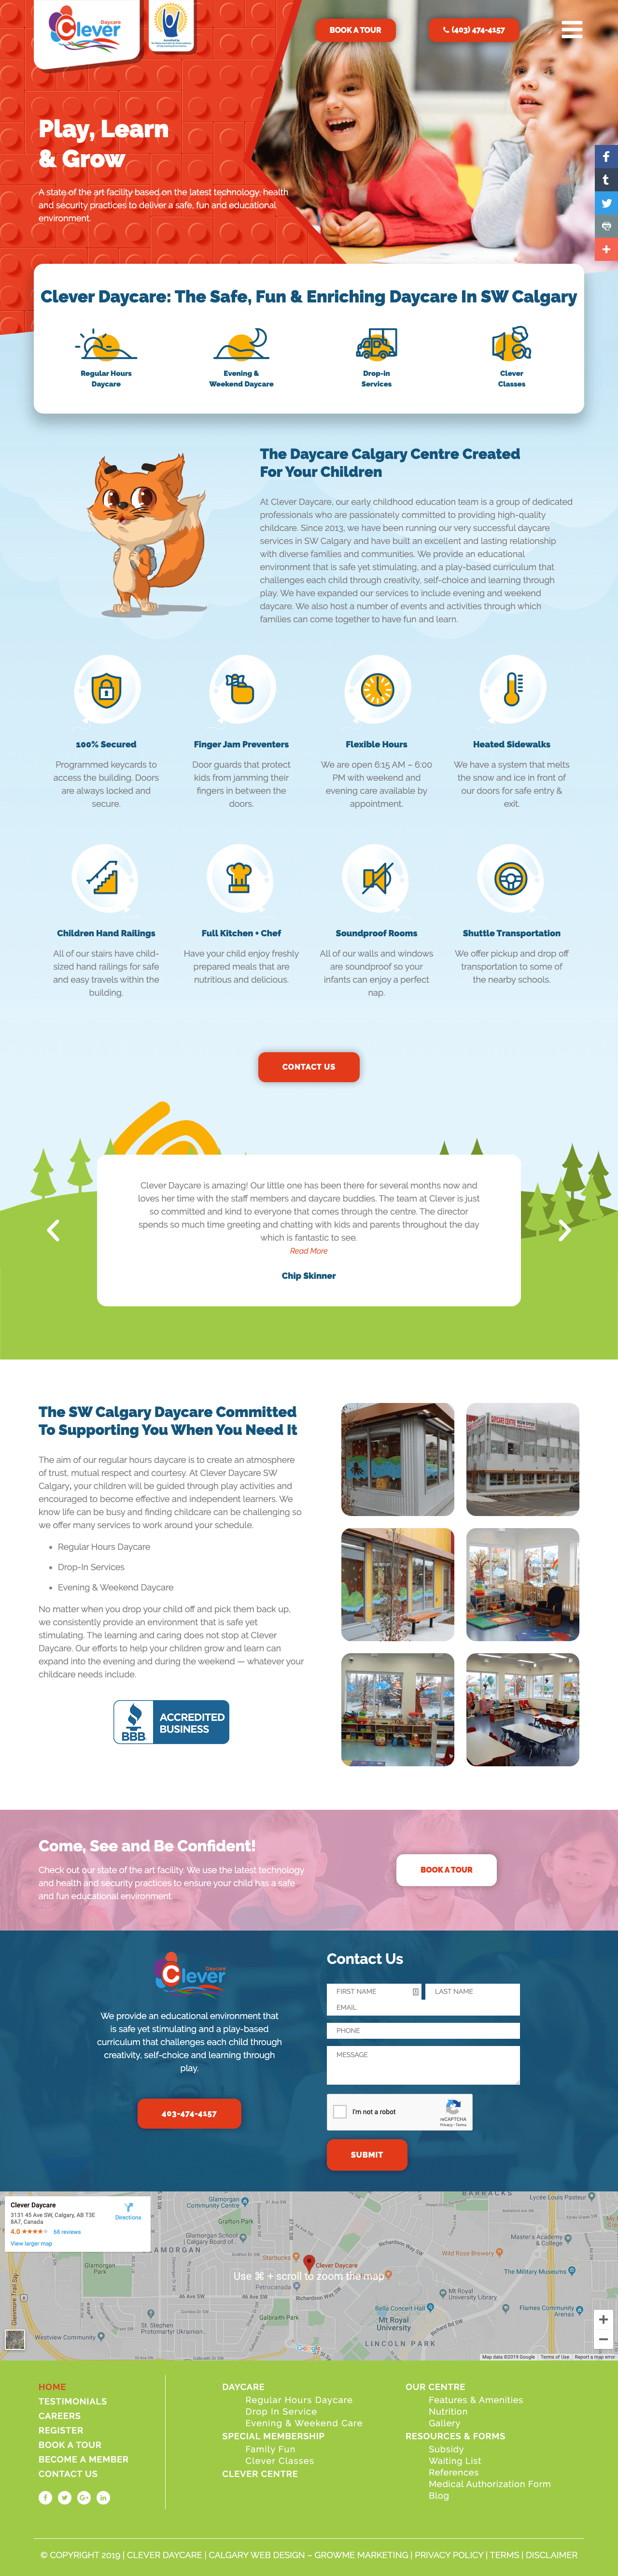 Clever Daycare Home Page